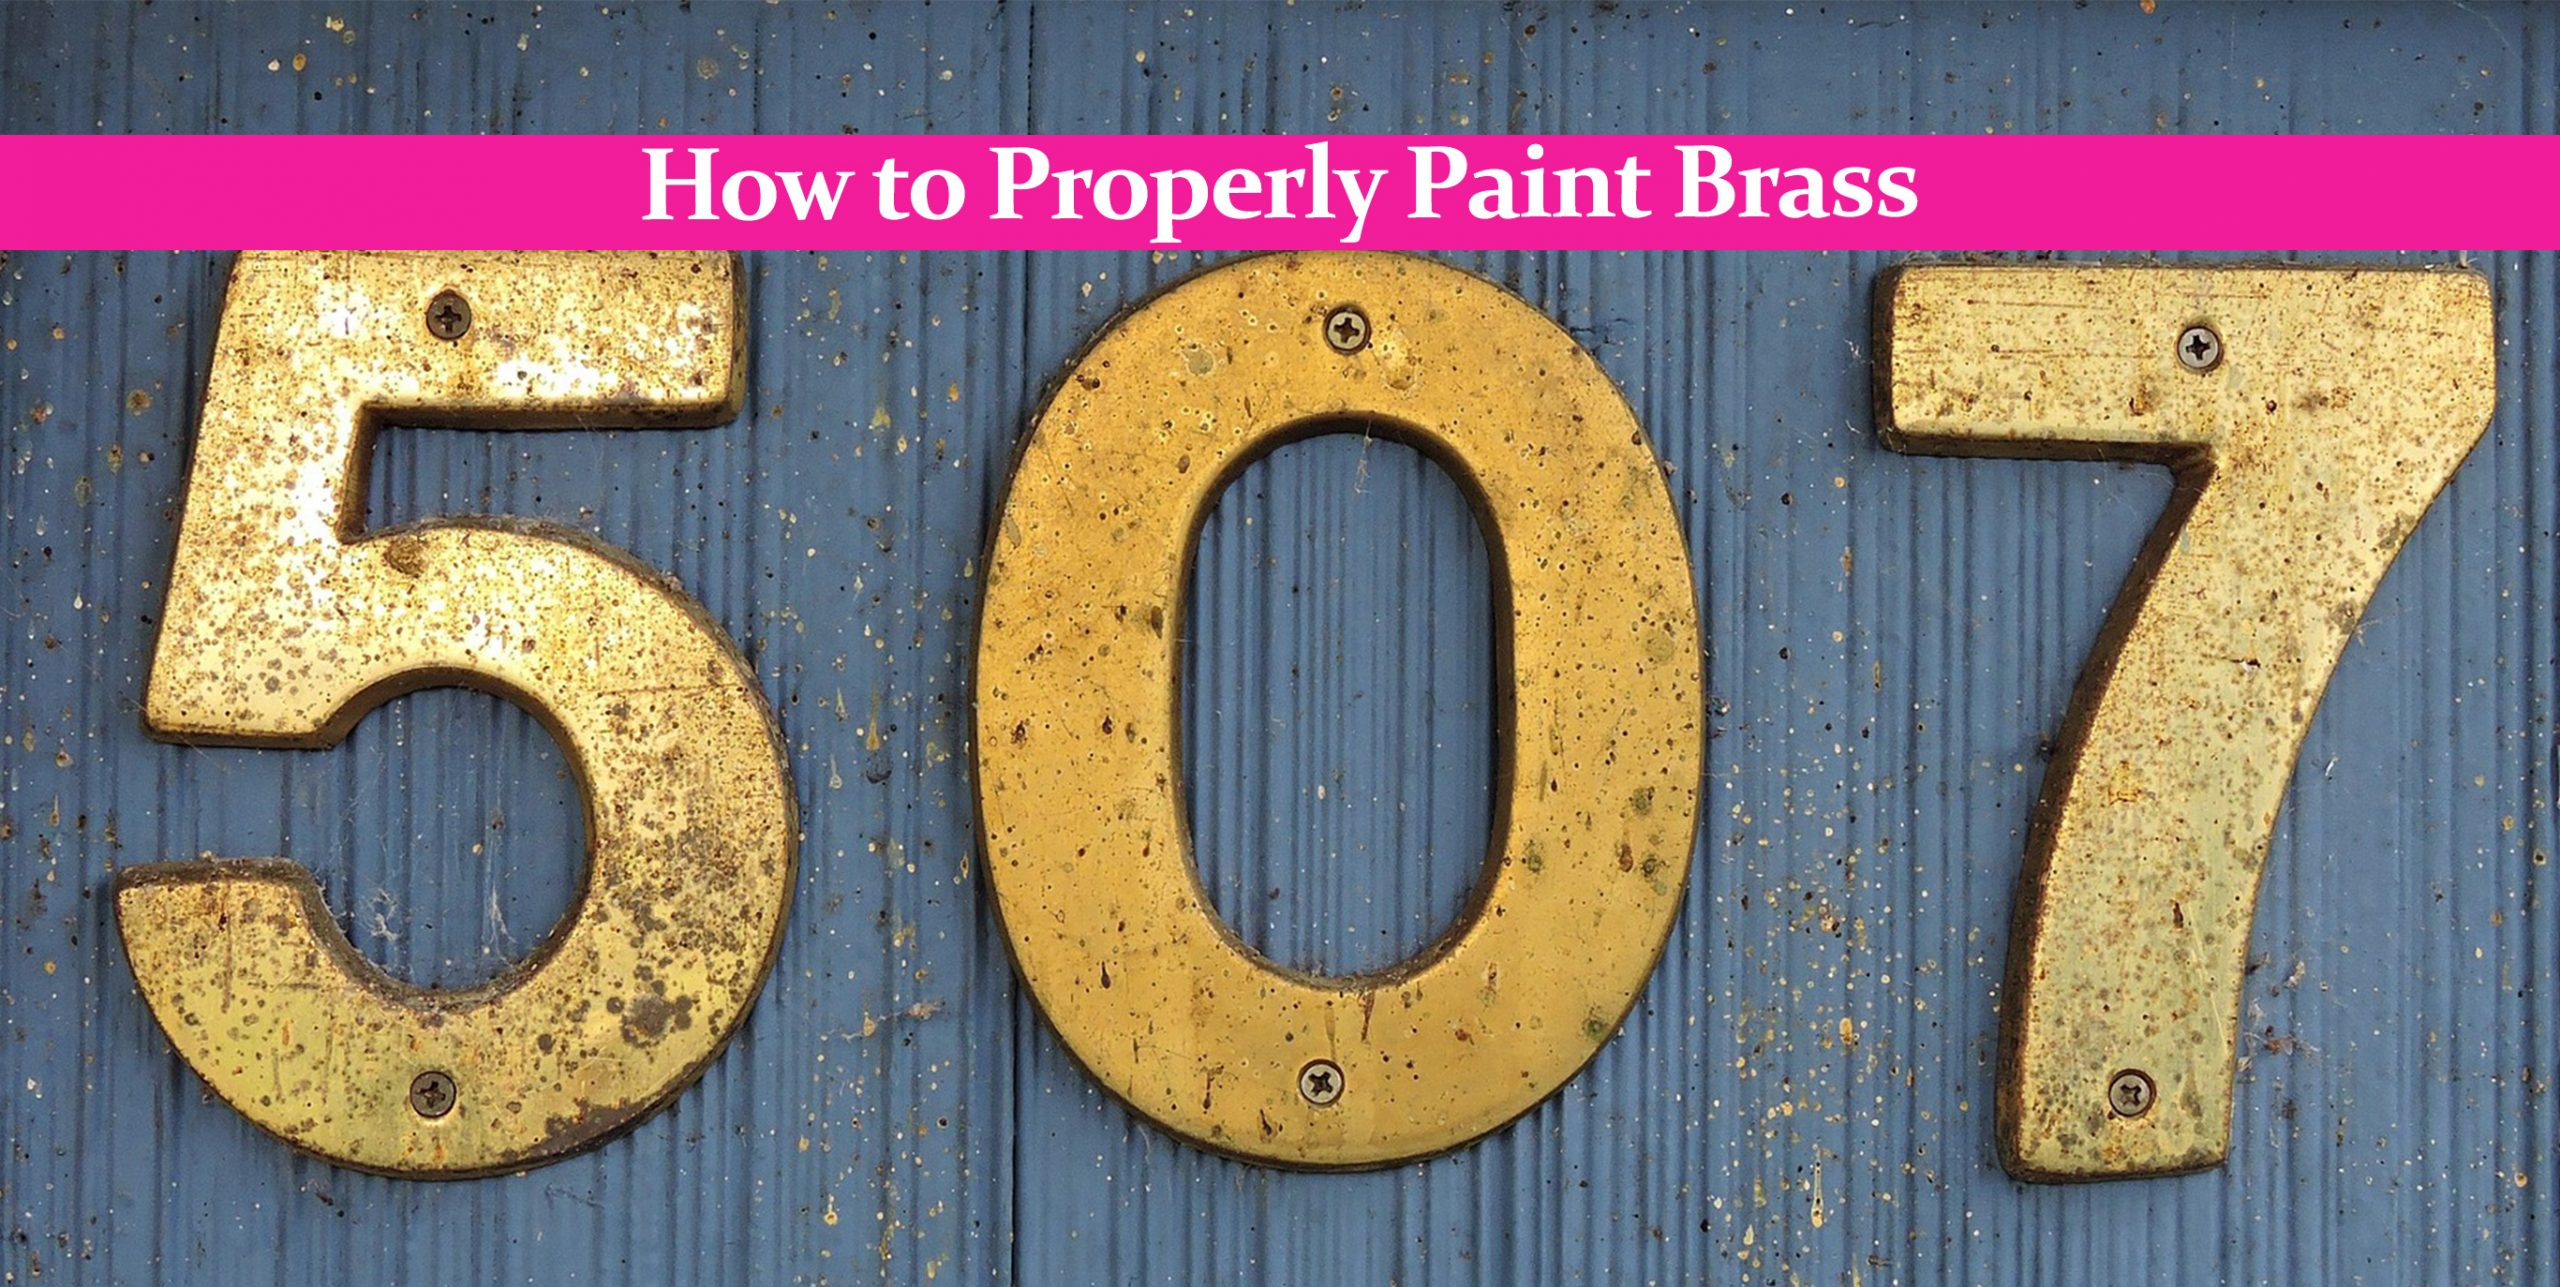 How to Properly Paint Brass